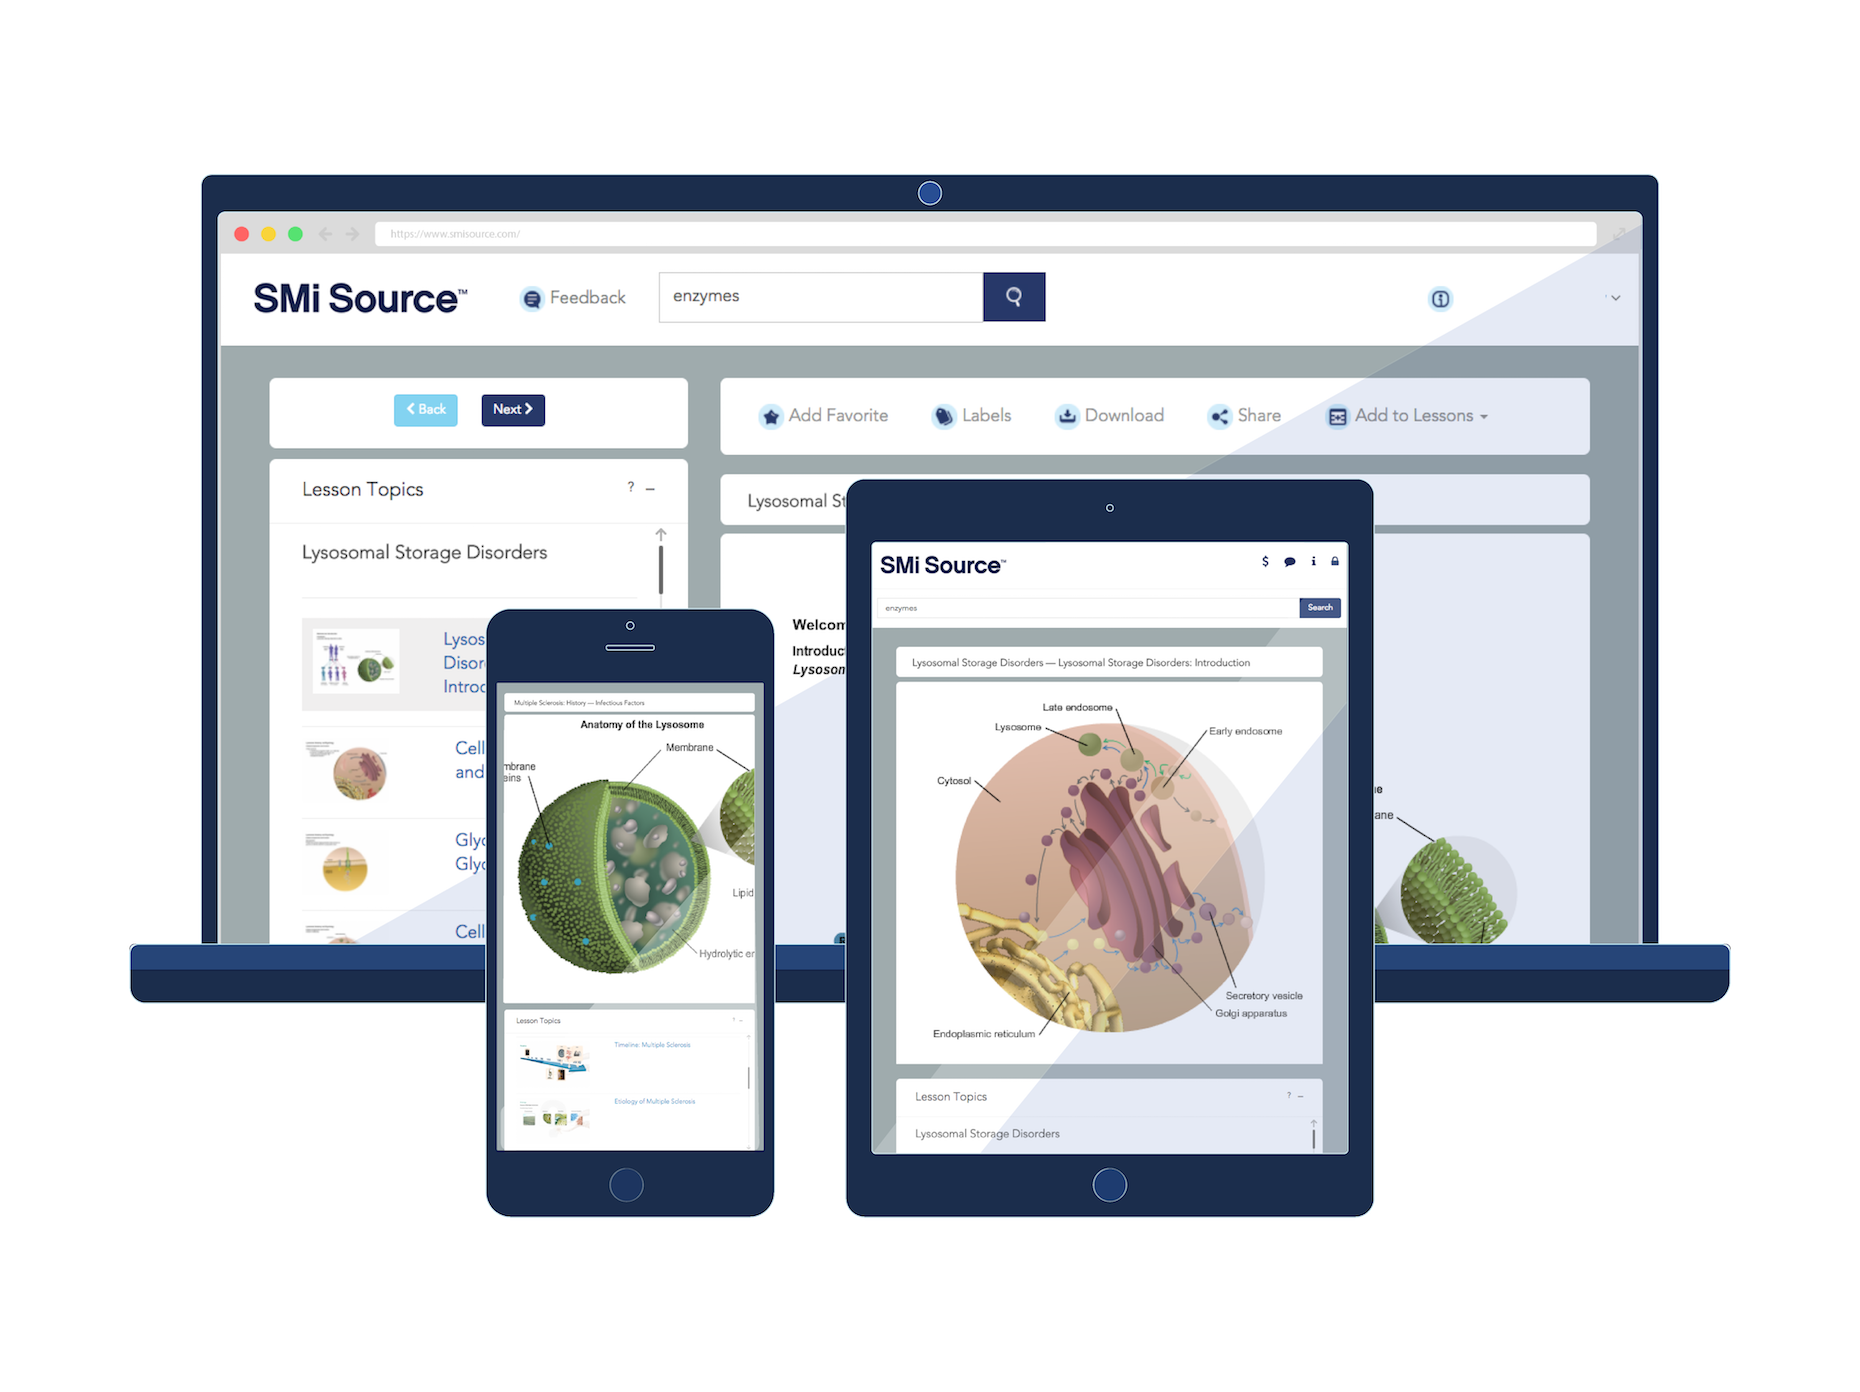 Video overview of SMi Source, the solution for your microlearning needs in short 3-5 min videos that can be used for staff training, building presentations, and for a quick reference when searching medical condition, disease, or clinical trials.